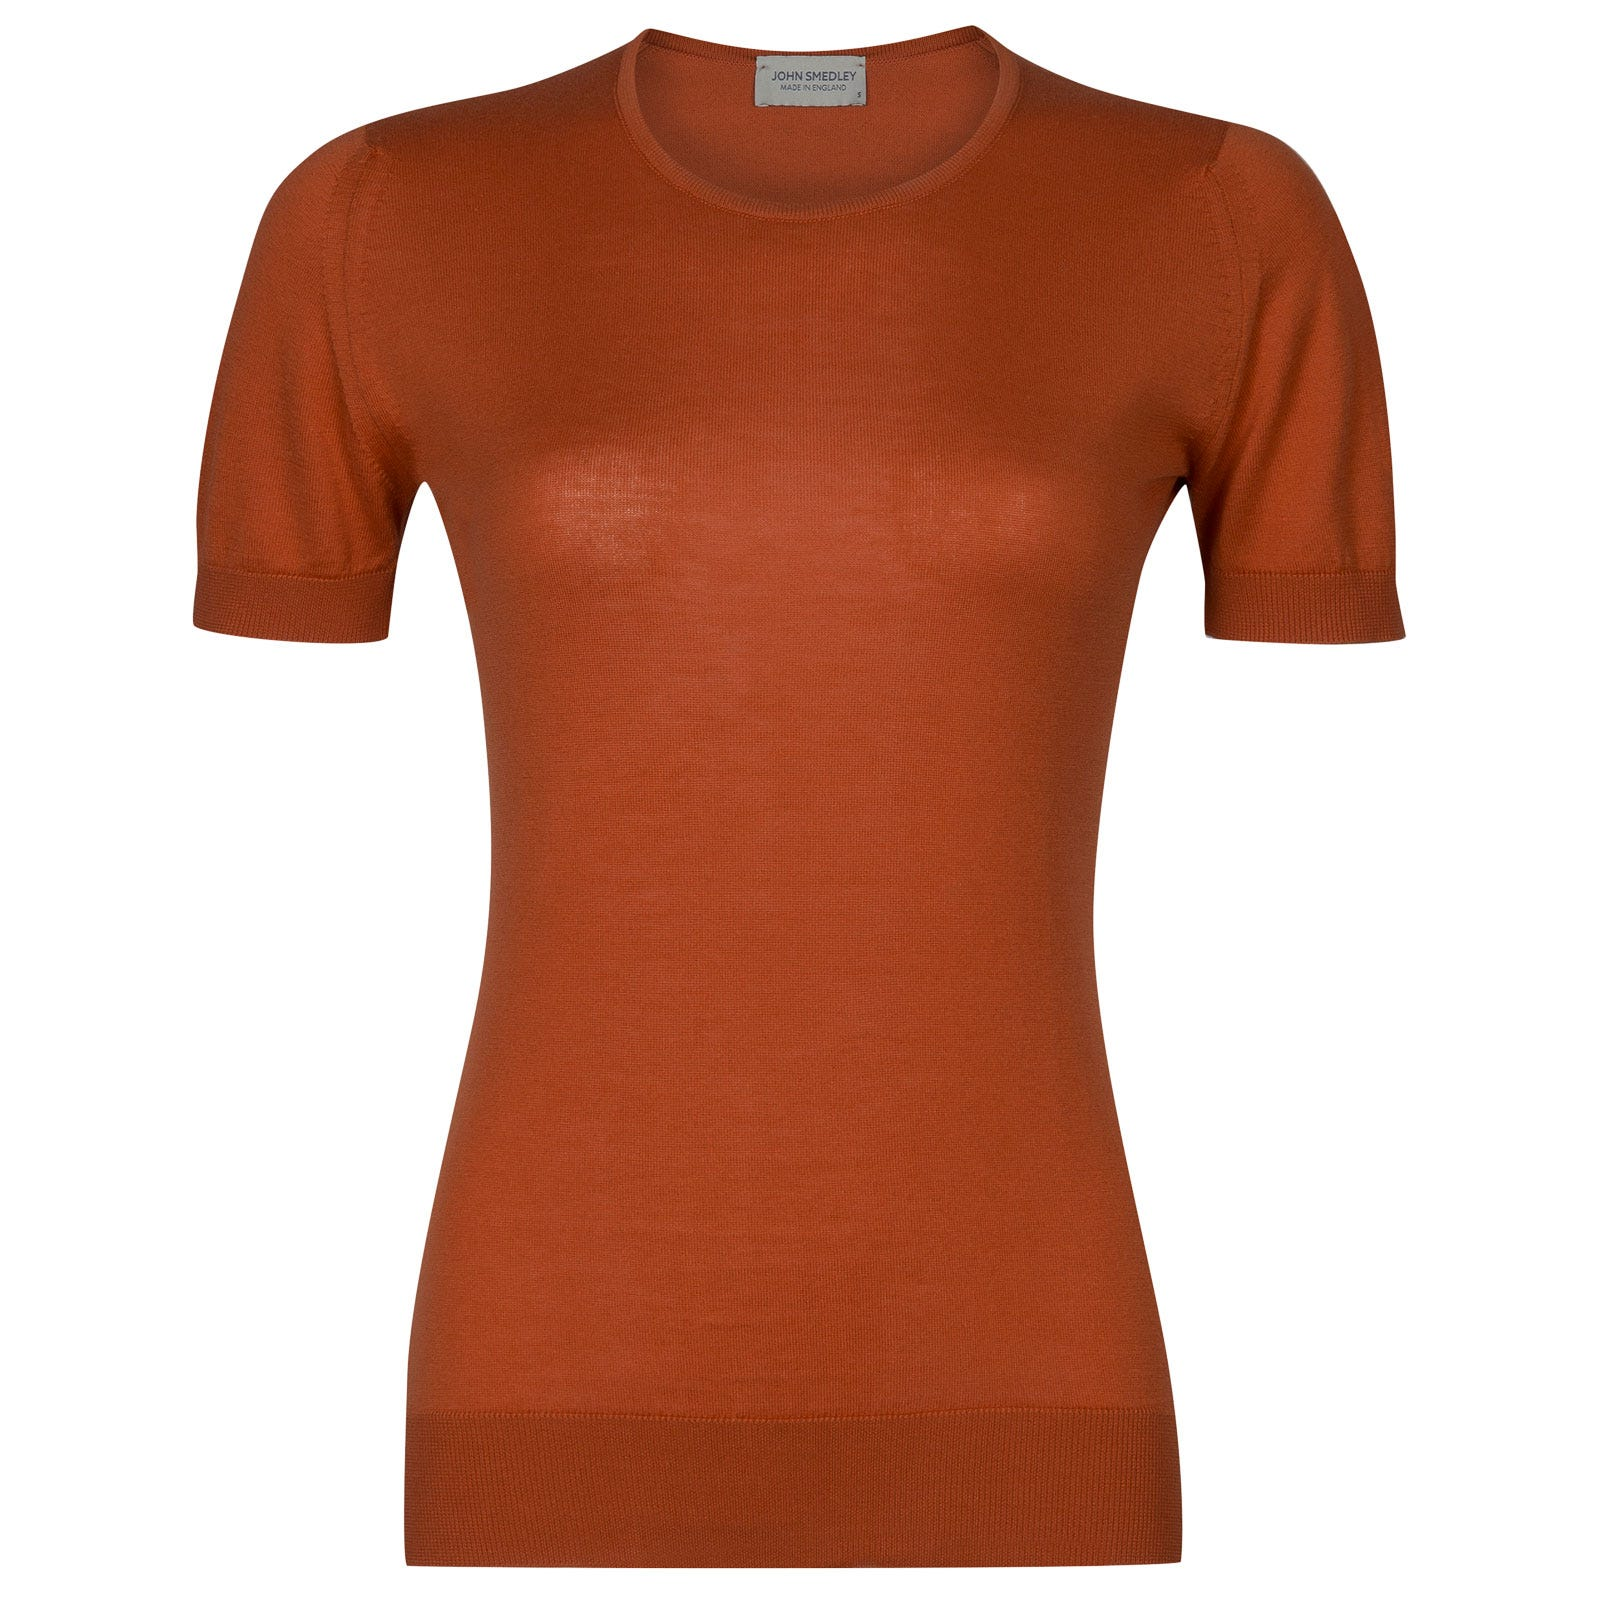 John Smedley daniella Sea Island Cotton Sweater in Flare Orange-S